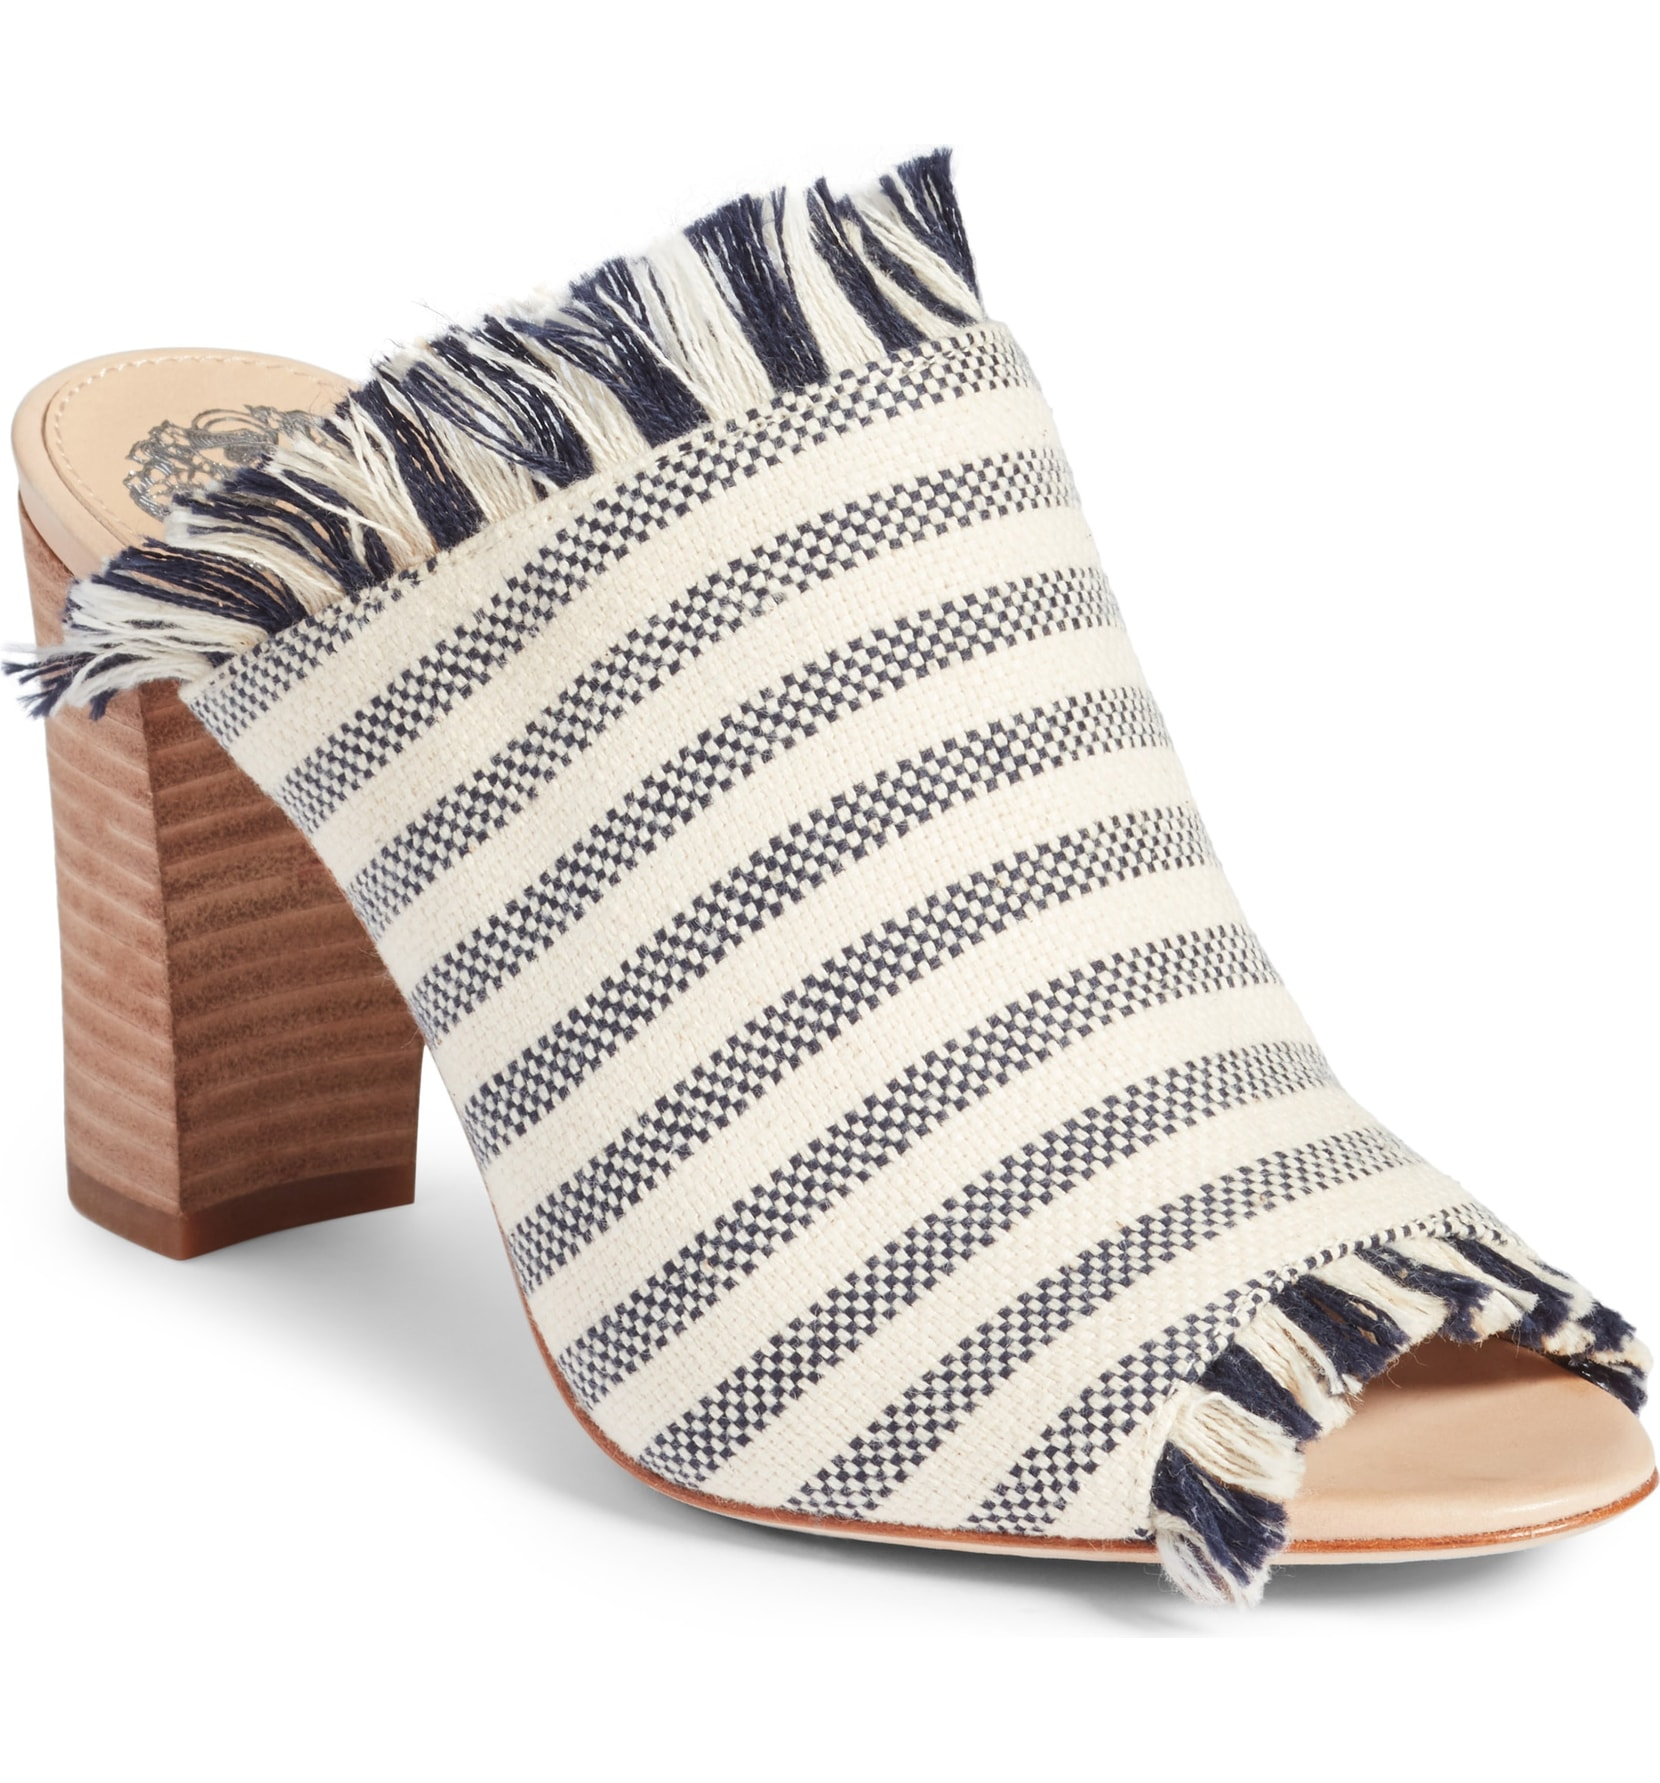 26a733865a49 A fringed linen weave design with navy and cream stripes, plus a chunky  heel make for a shoe meant for comfortable walking and that can be paired  with ...